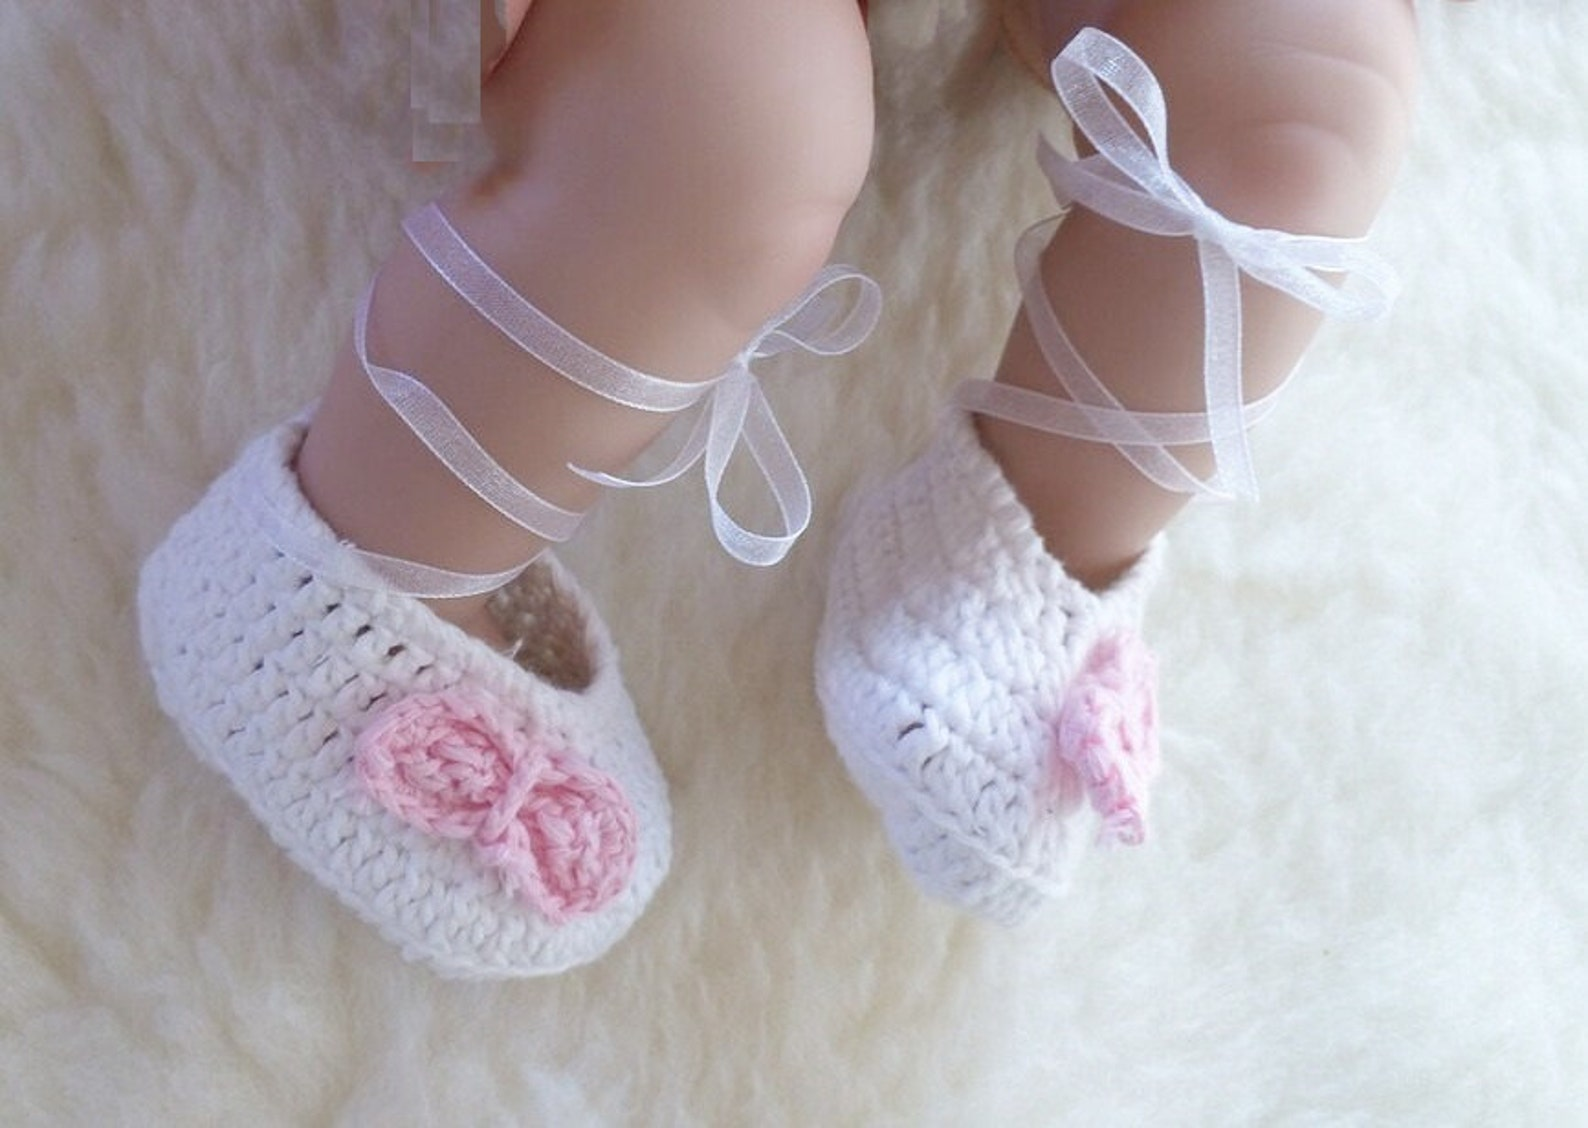 handmade baby girl newborn doll crochet knit ballerina ballet shoes 0-6m sz 0 1 2